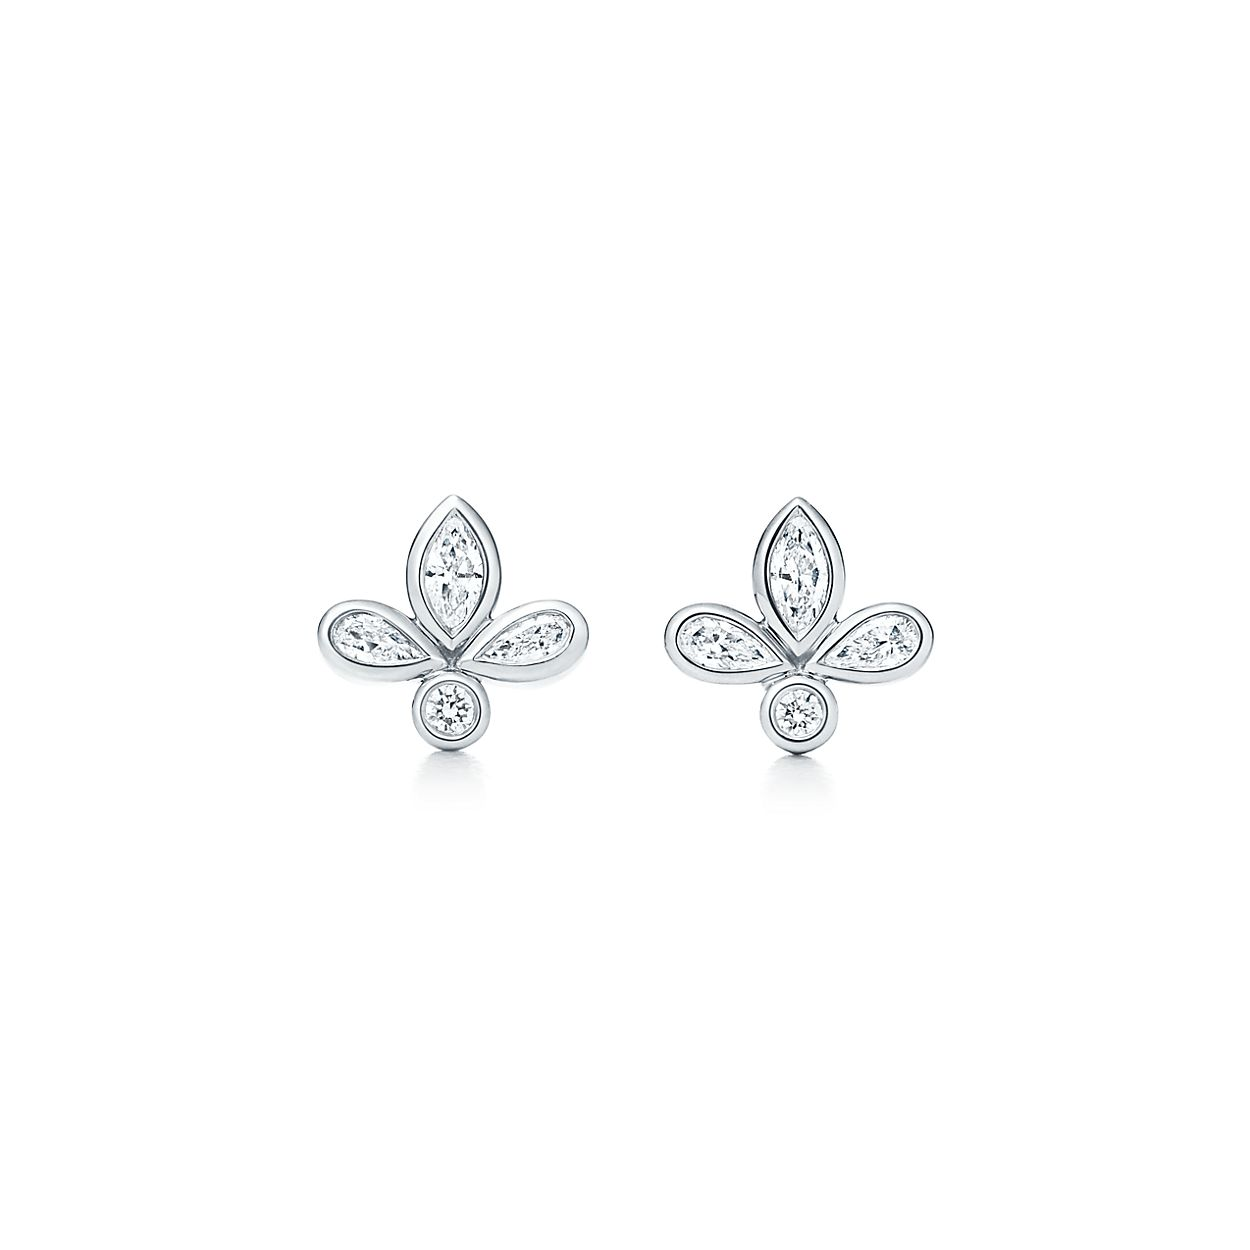 jewellery platinum diamond drop earrings zoom